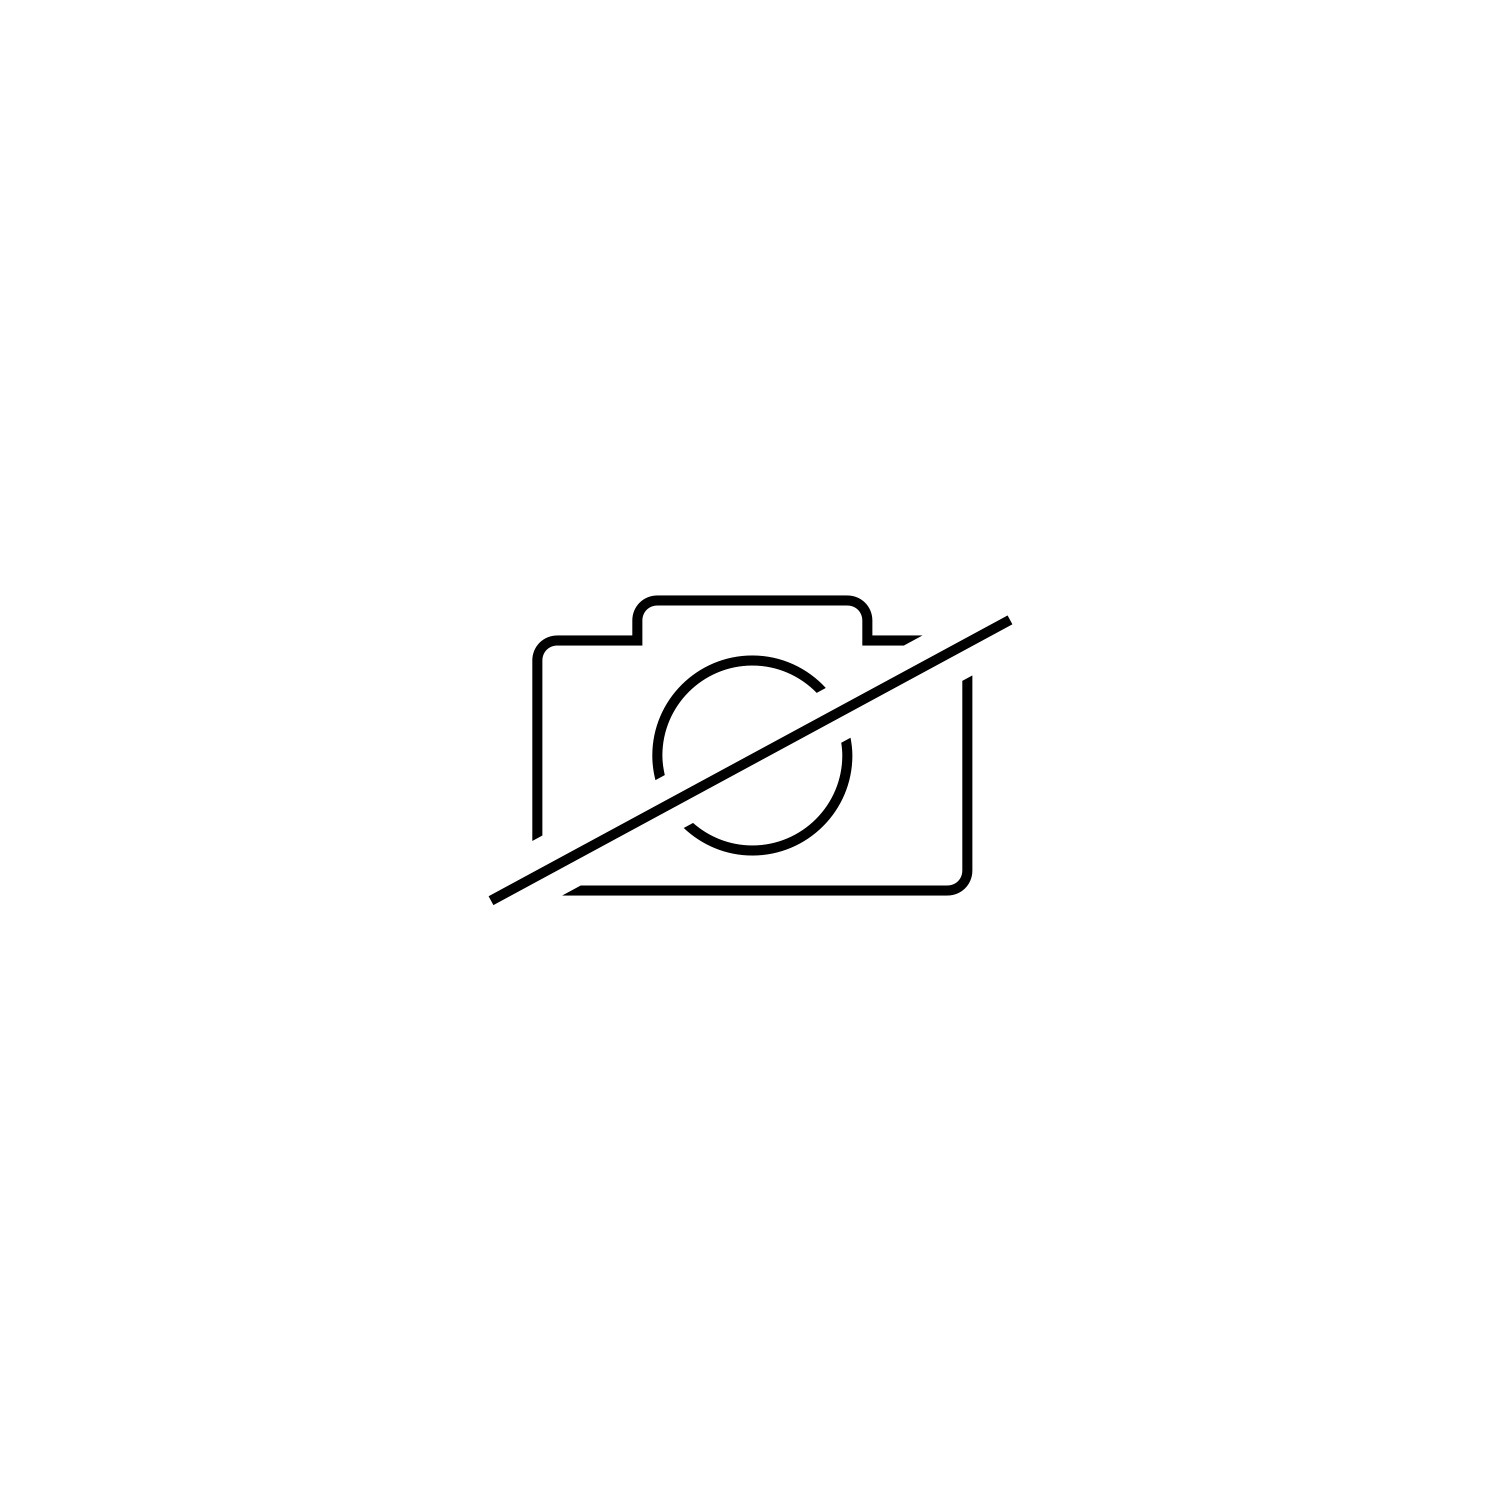 Audi e-tron USB-Stick, Antiguablau, 32 GB